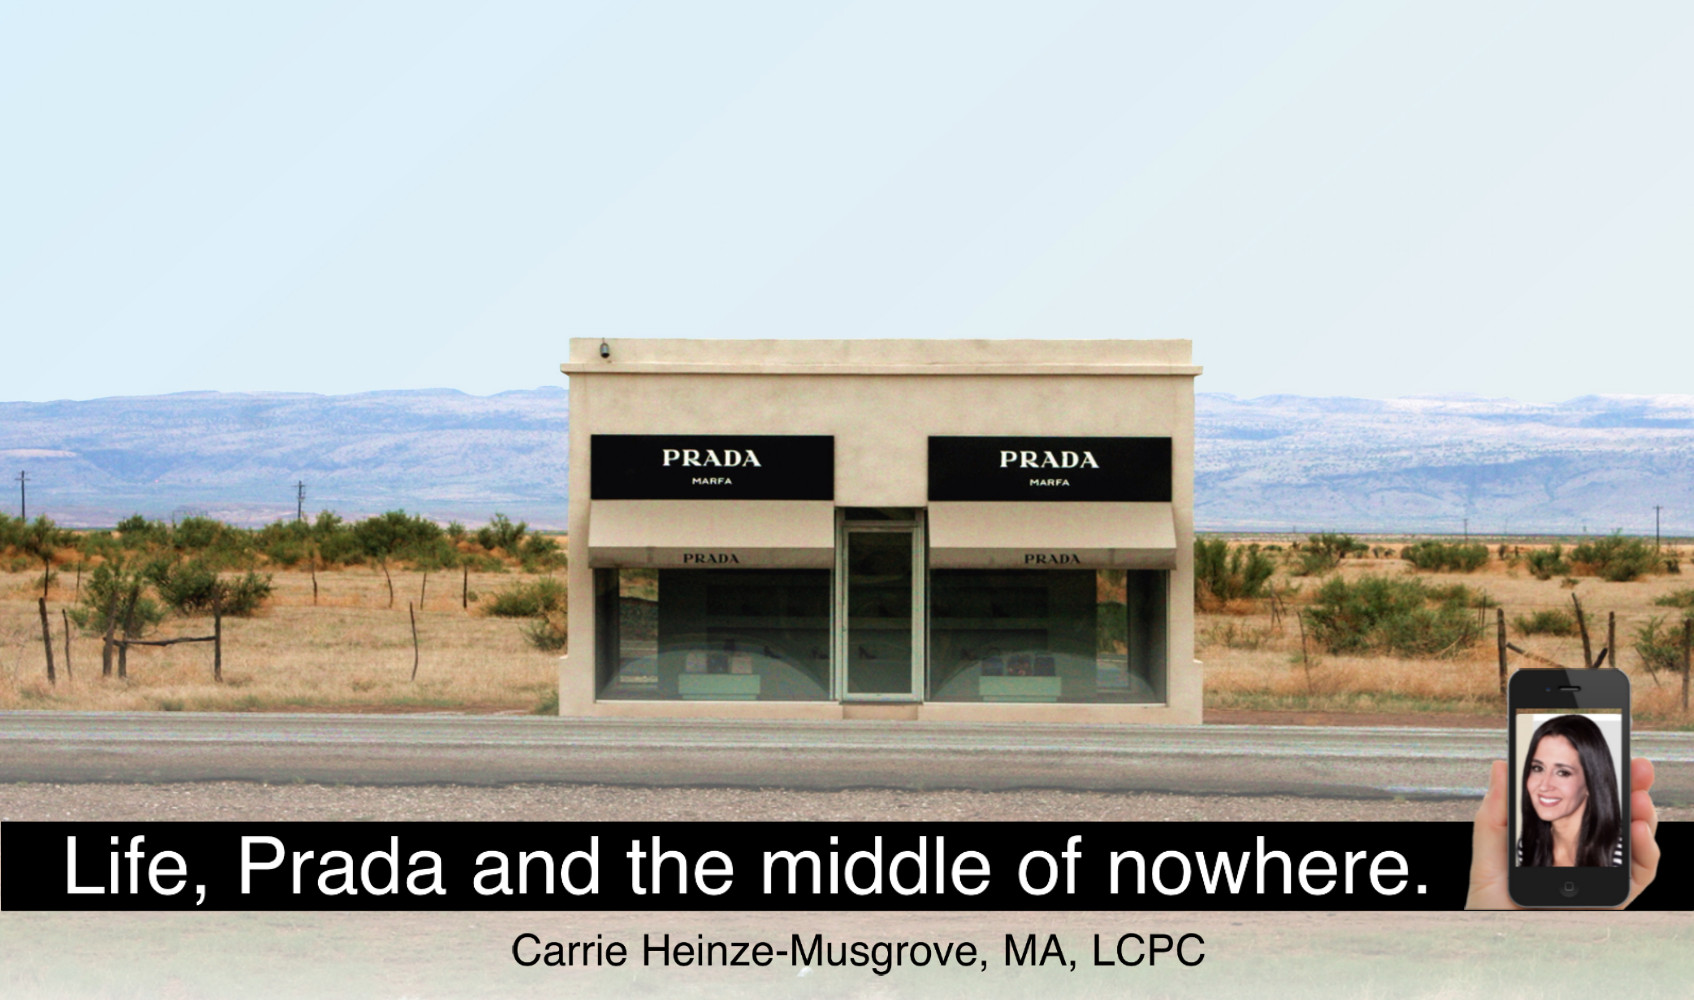 Life, Prada and the middle of nowhere.